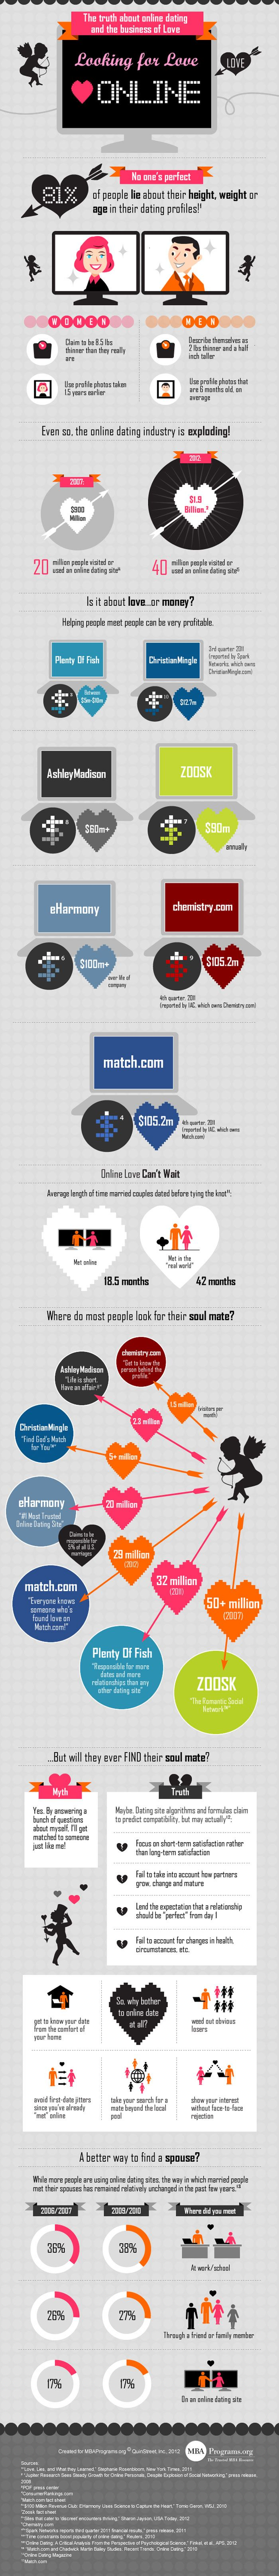 Online Dating Statistics 2012 [Infographic] You can hook-up tonight